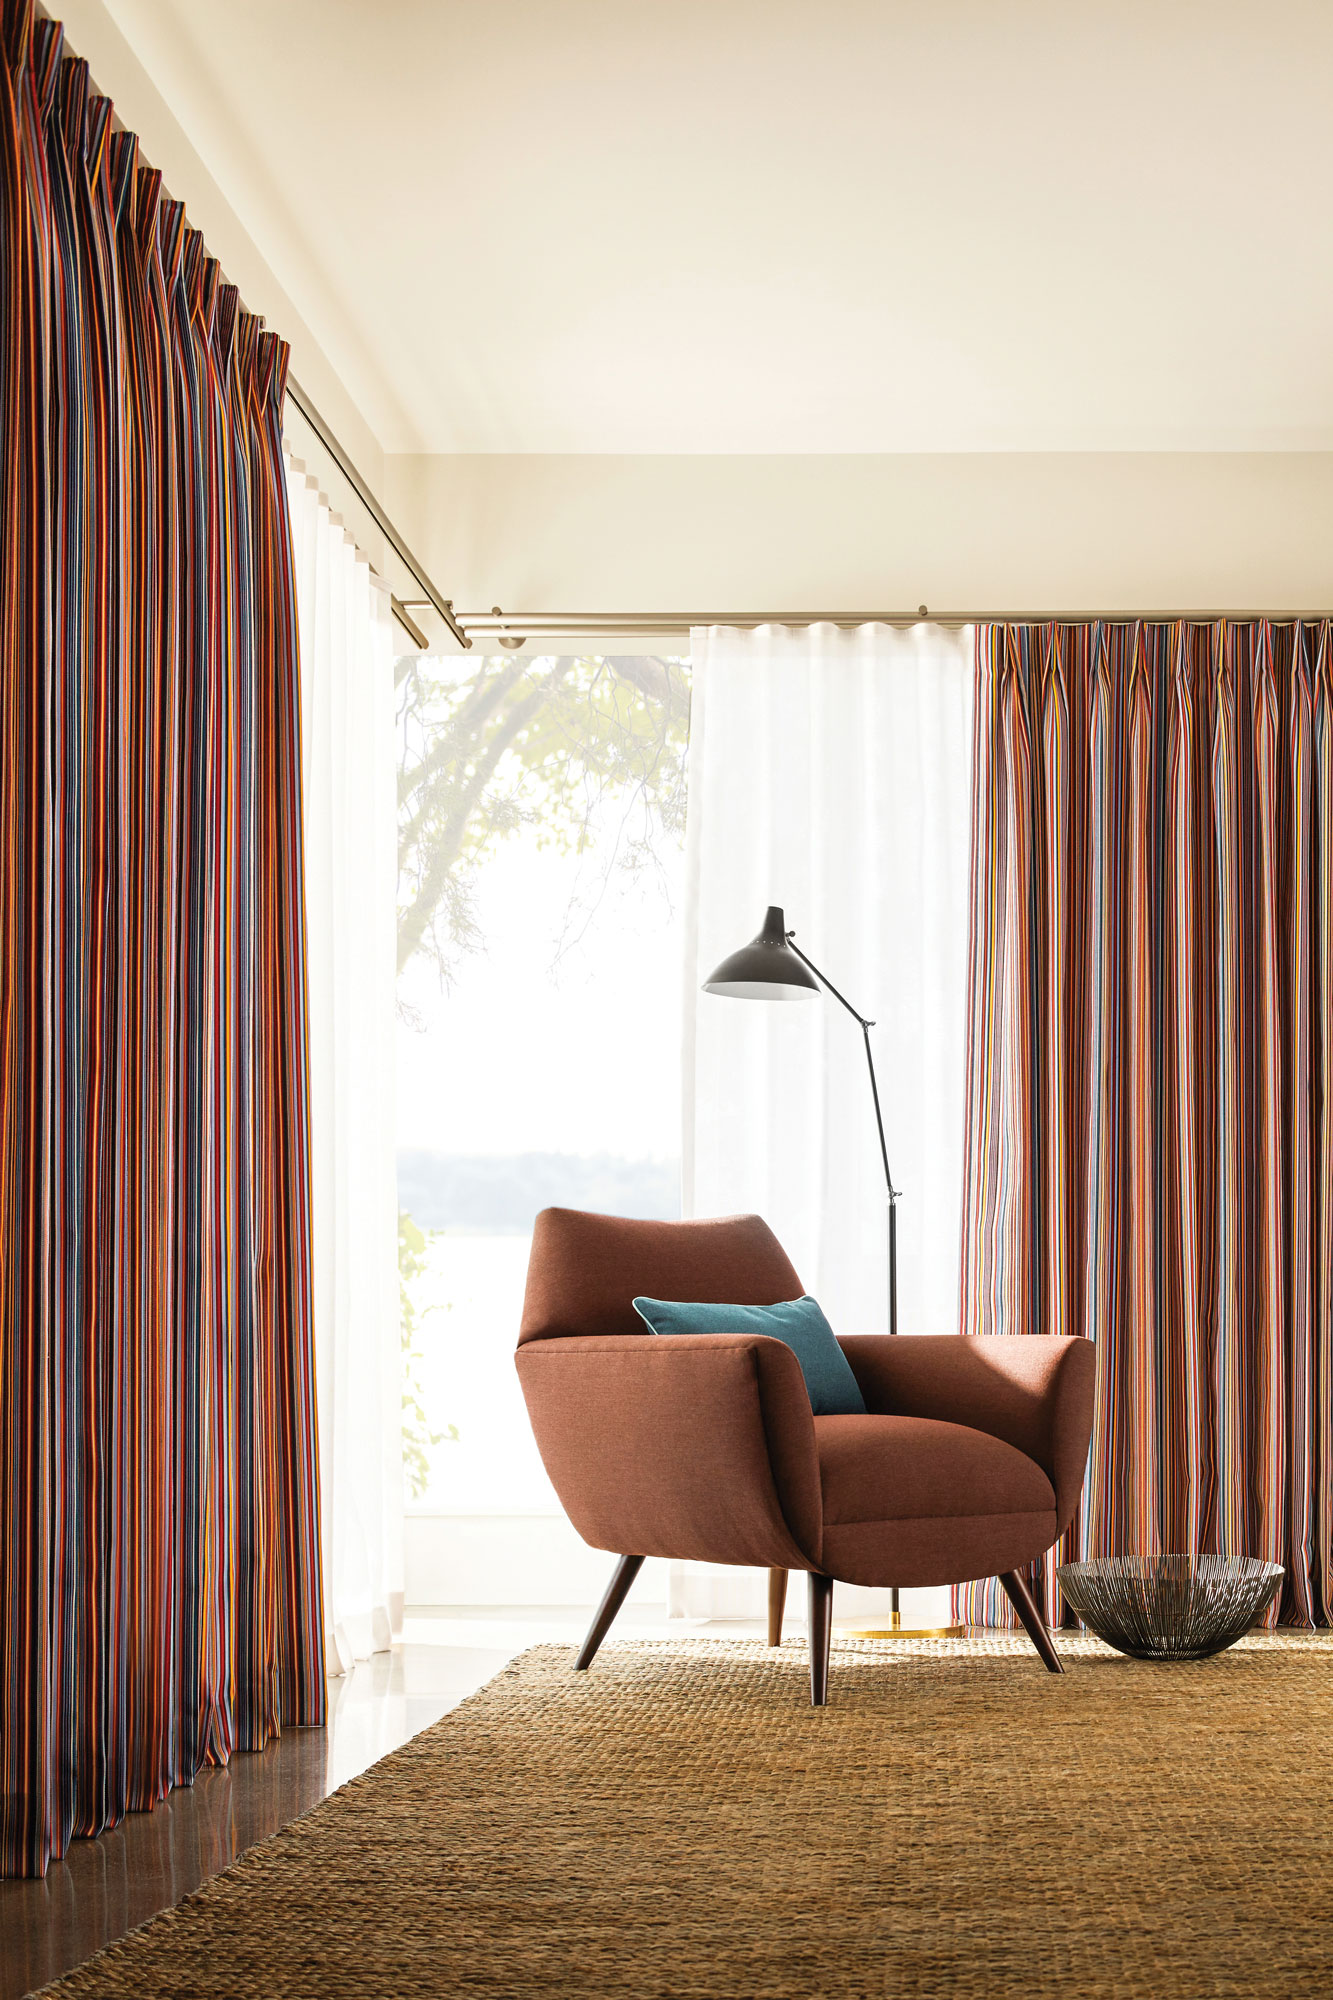 A family room decorated in earth tones, with a Sunbrella upholstered retro chair and Sunbrella striped drapery from The Shade Store.